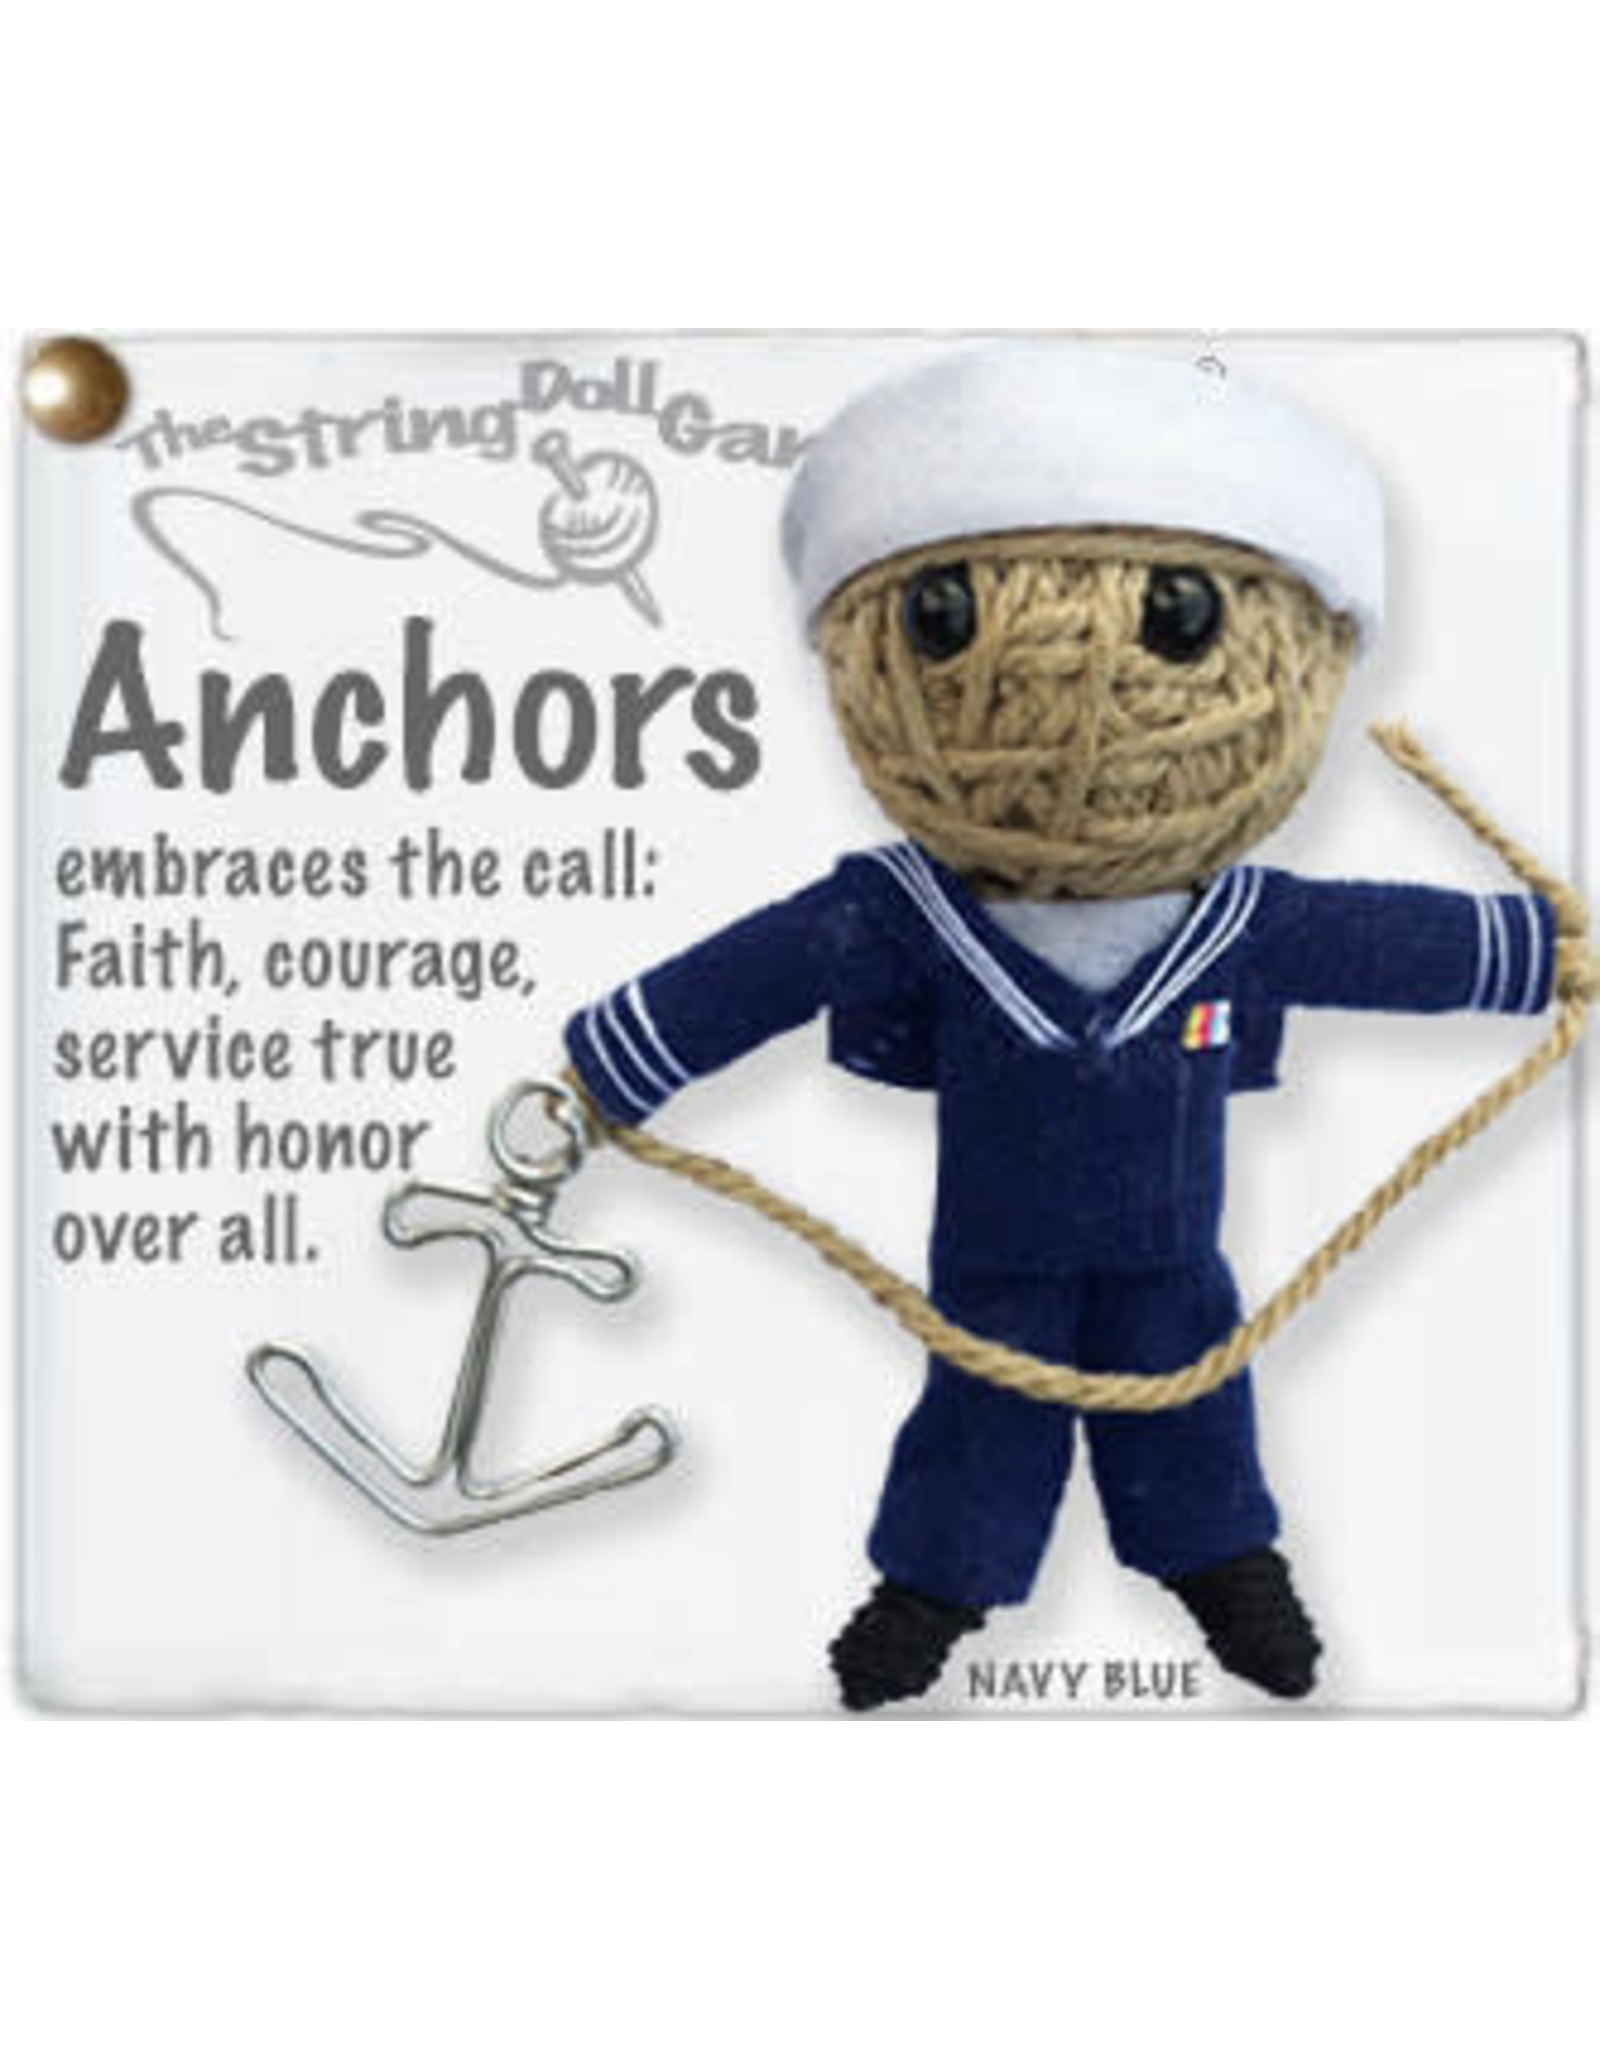 Stringdoll Anchors